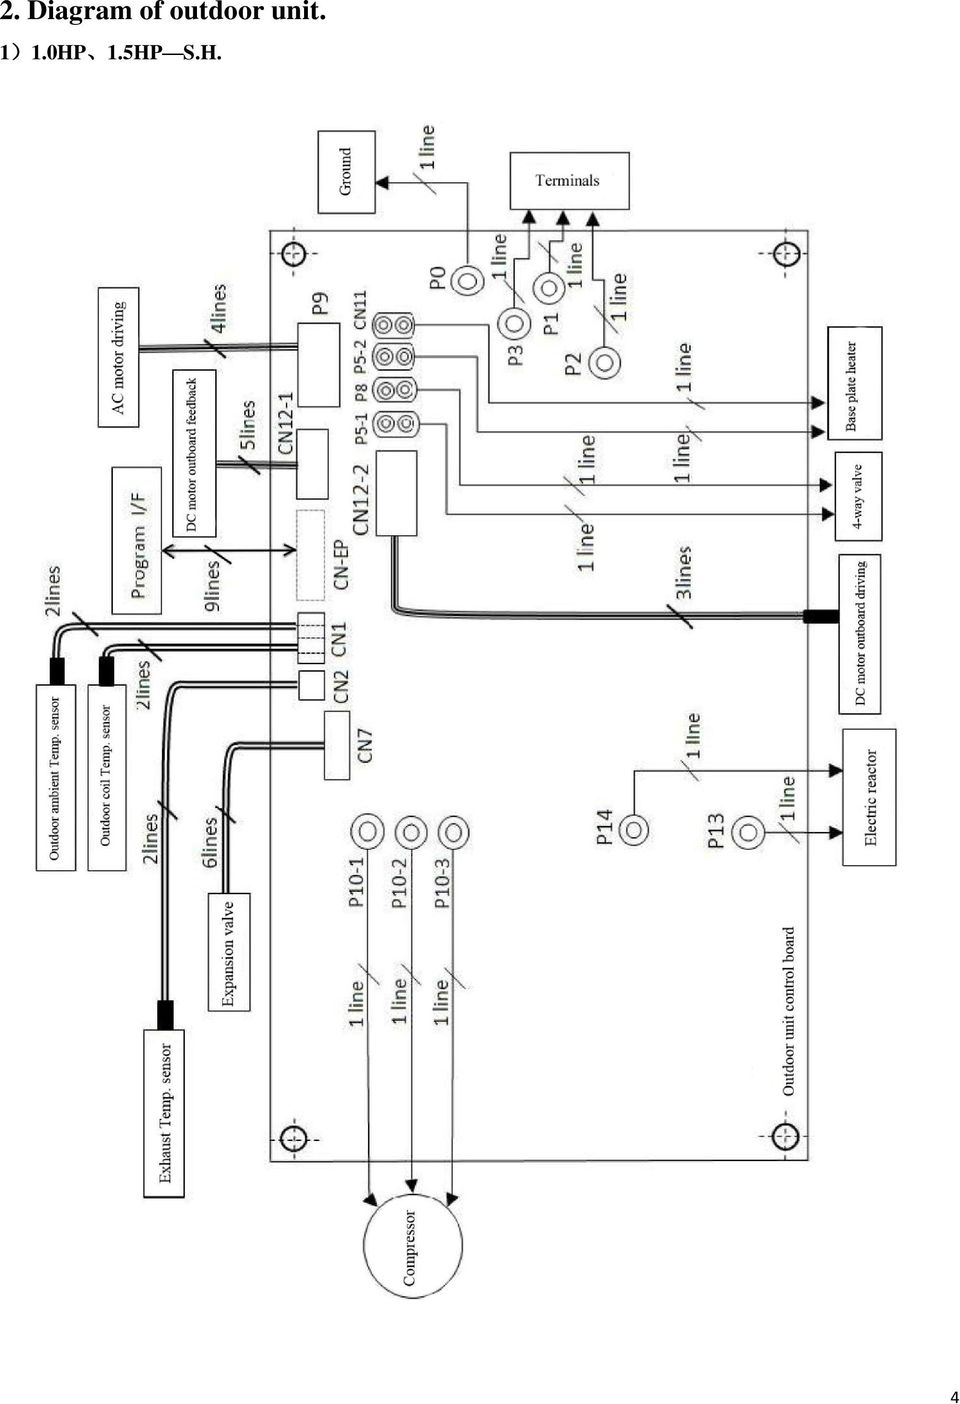 repair guideline for tcl dc inverter air conditioner